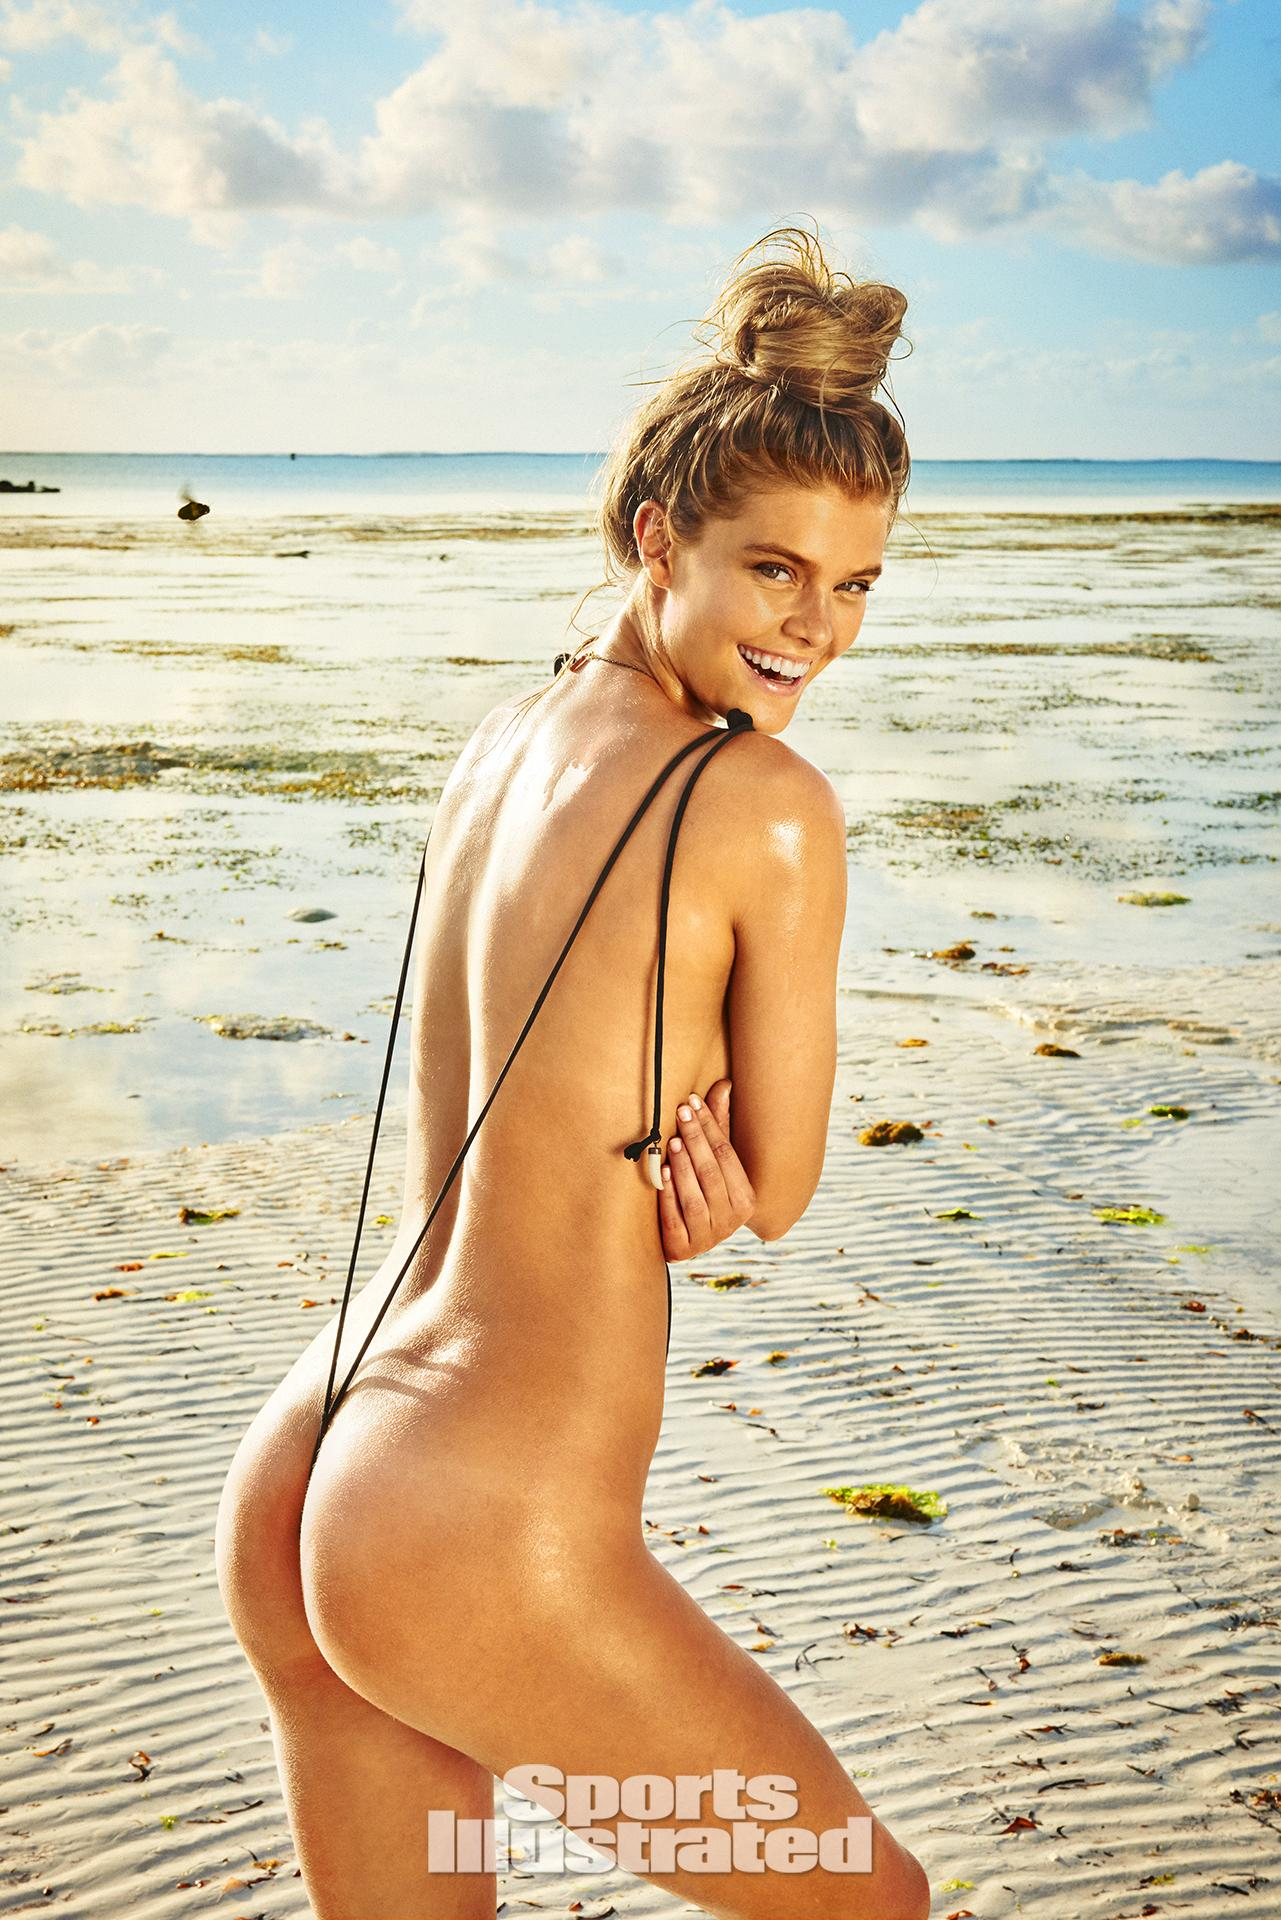 nina-agdal-2016-sexy-topless-photo-sports-illustrated 2